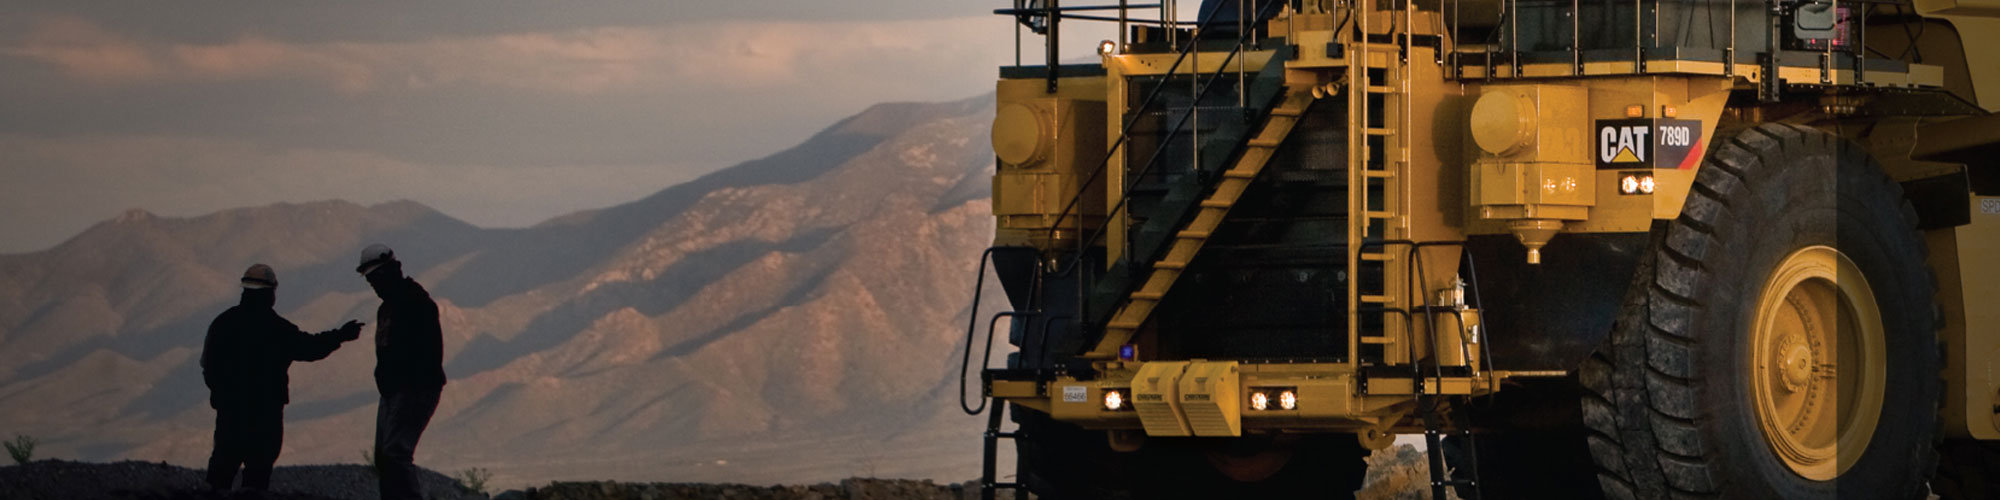 Mining Equipment and Earthmoving